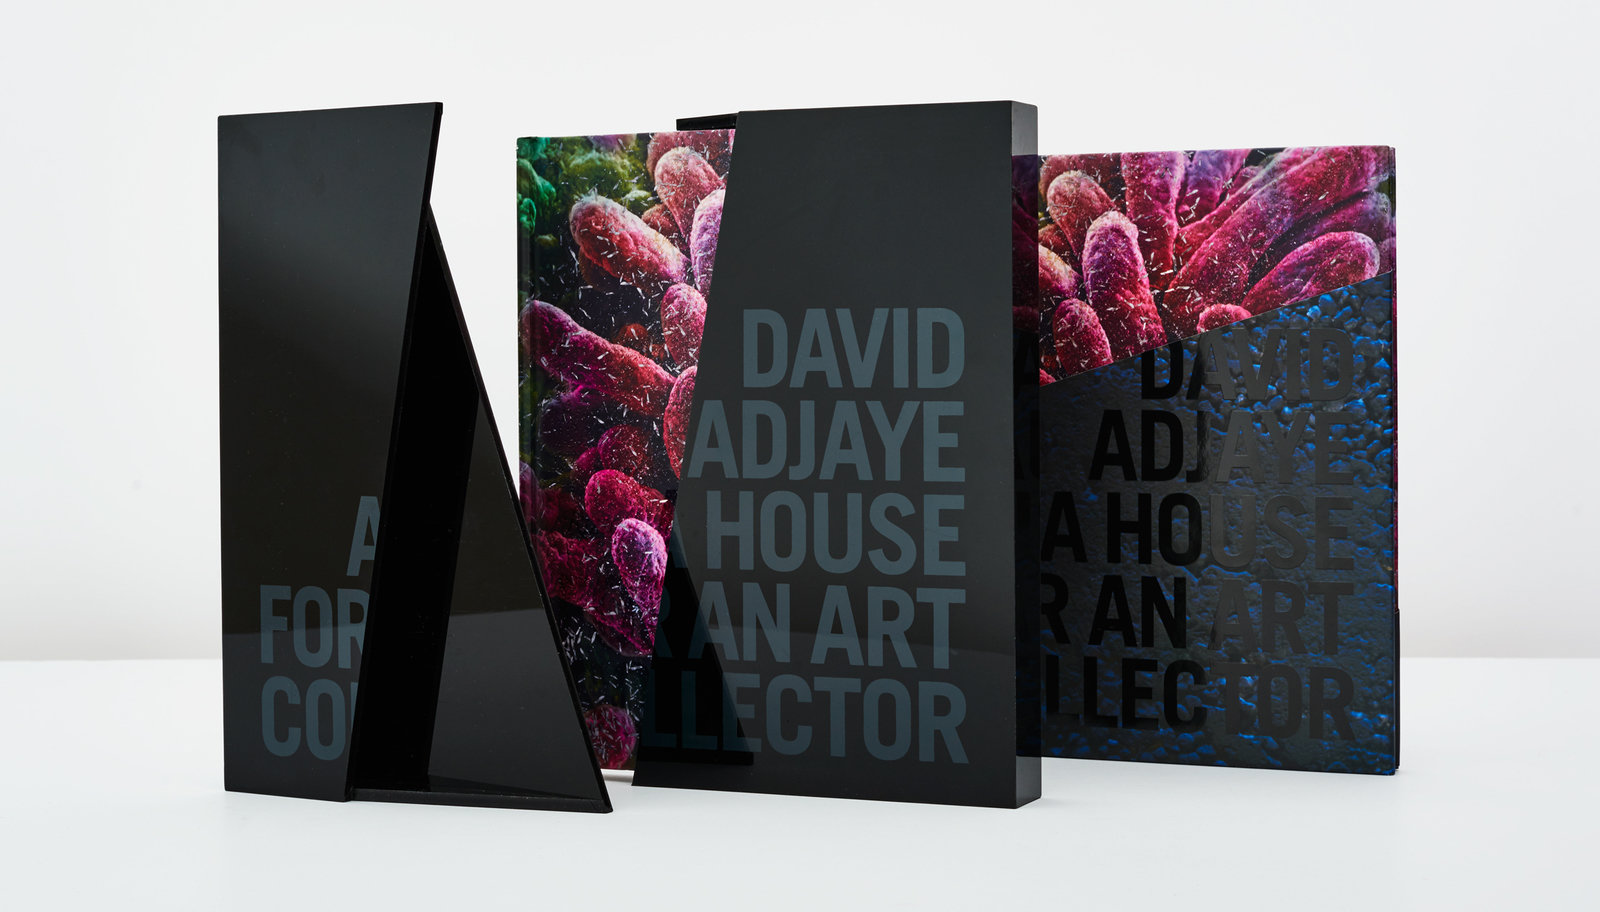 Watson and company david adjaye brochure hero 1600 0x10x2234x1274 q85